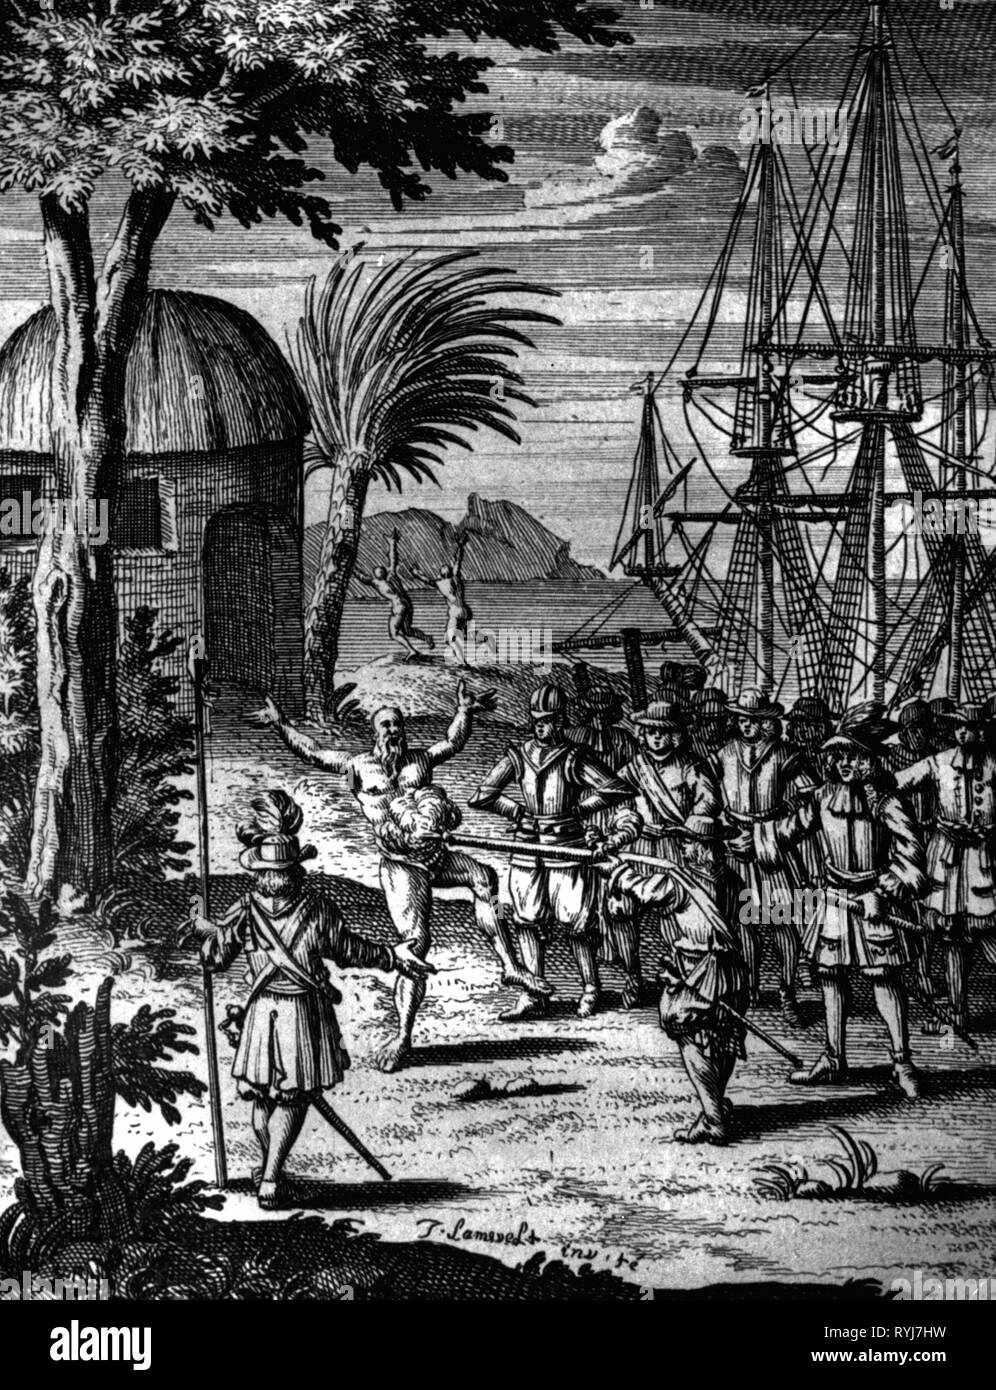 transport / transportation, navigation, buccaneers, captain John Watling is shooting an Indian, near Arica, Chile, January 1681, copper engraving by Jan Lamsvelt, 'The Buccaneers of America' by Alexandre Exquemelin, 1684, Additional-Rights-Clearance-Info-Not-Available - Stock Image